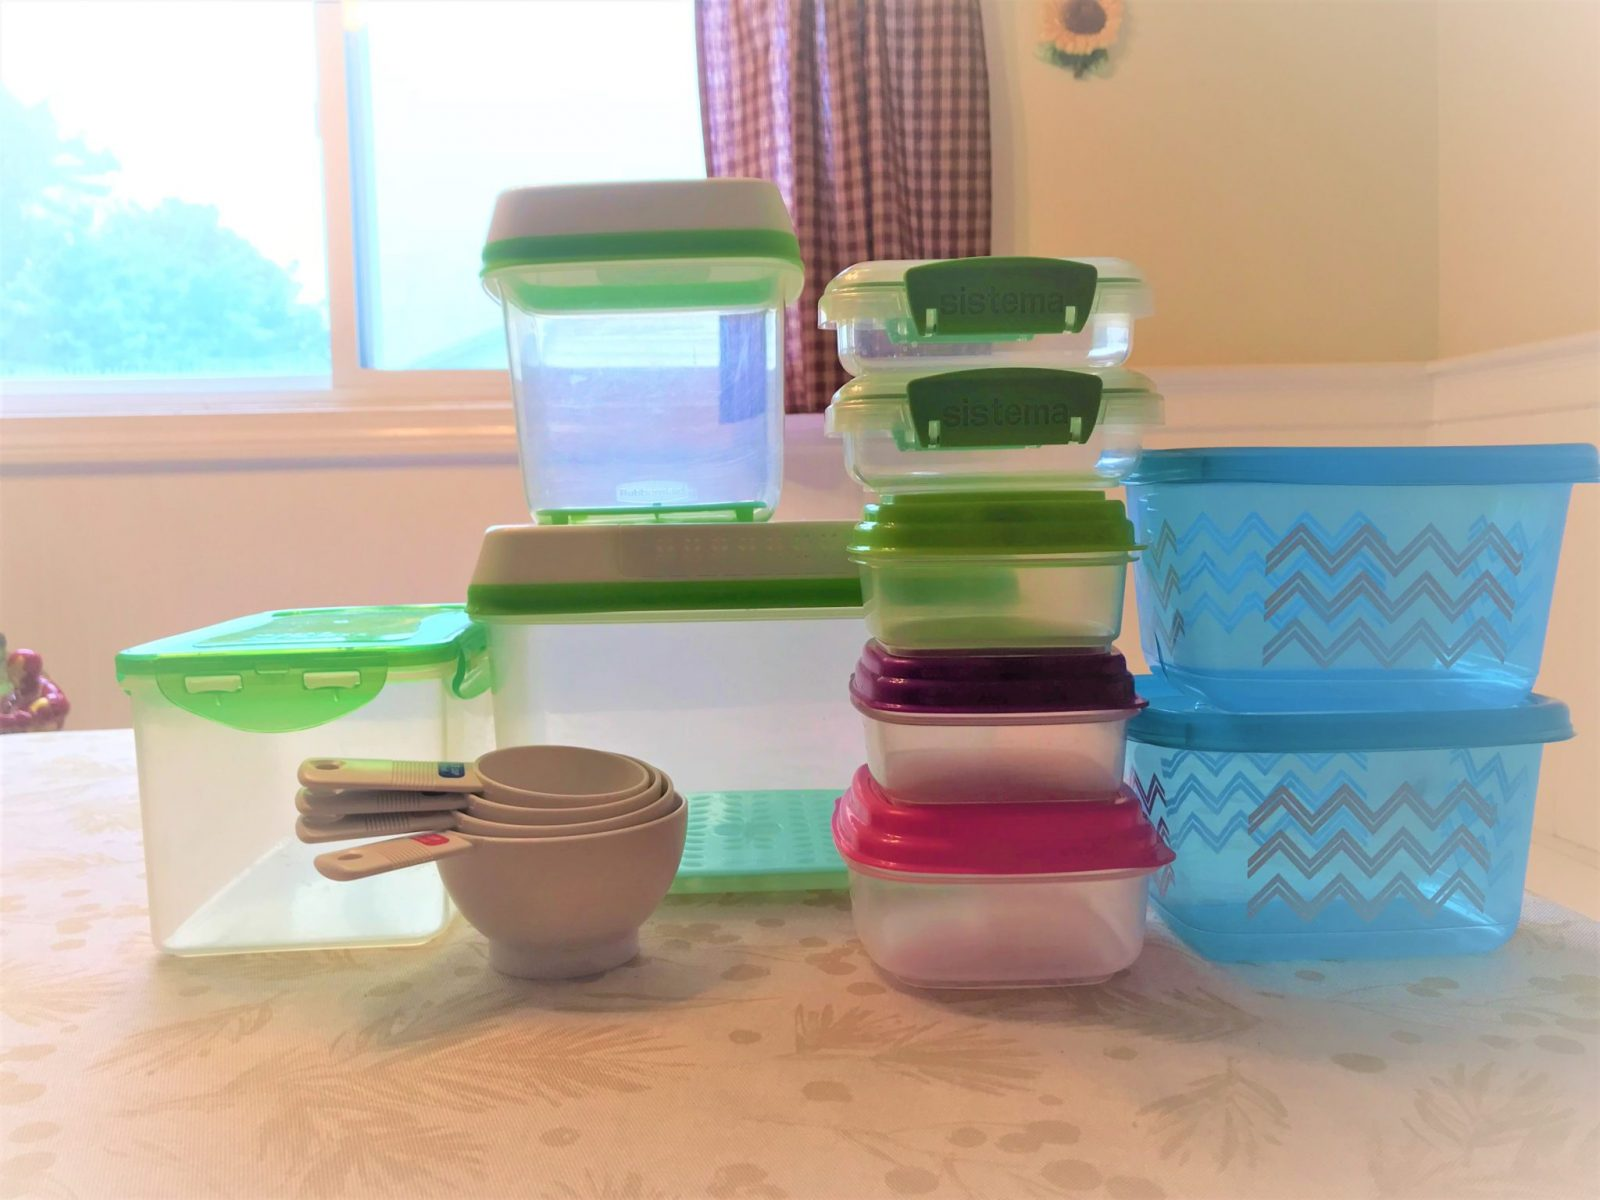 Measuring tools and food containers to help make meal prep easier